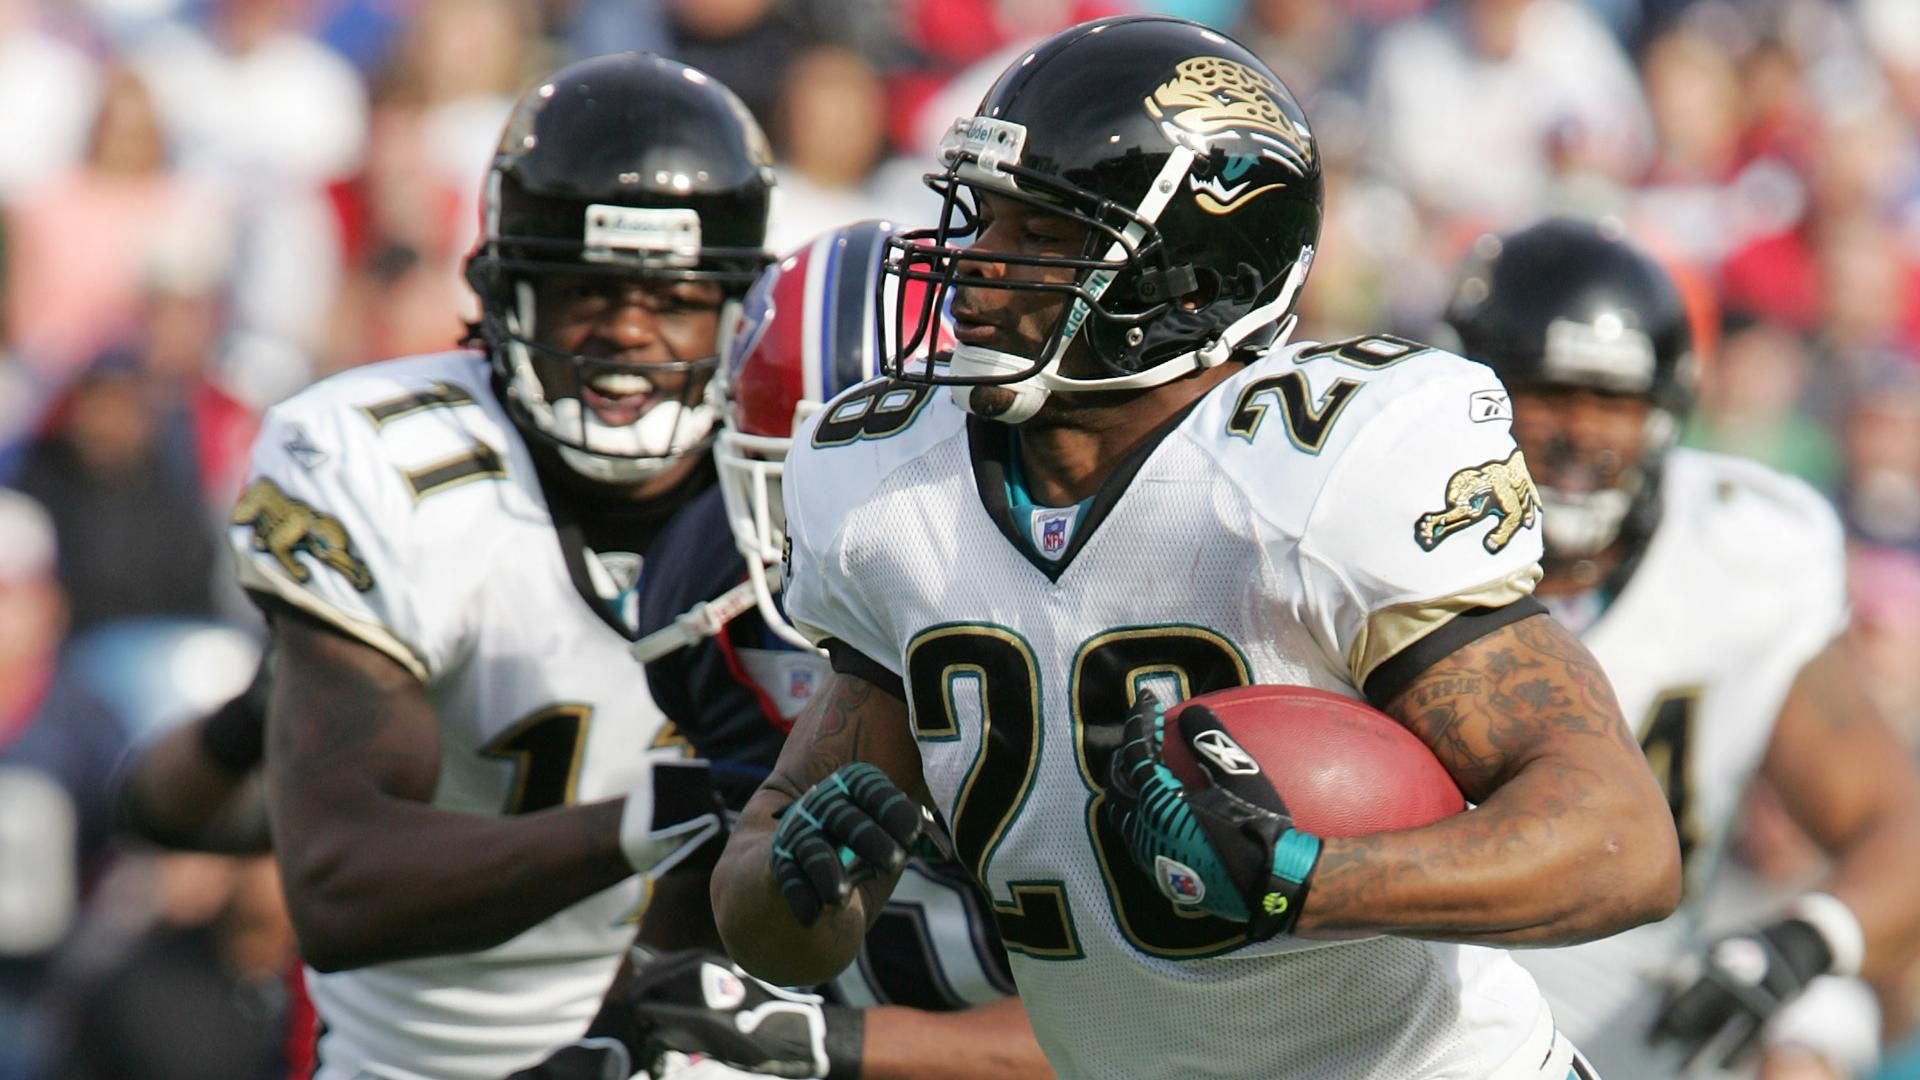 Fred Taylor reacts to his son's incident